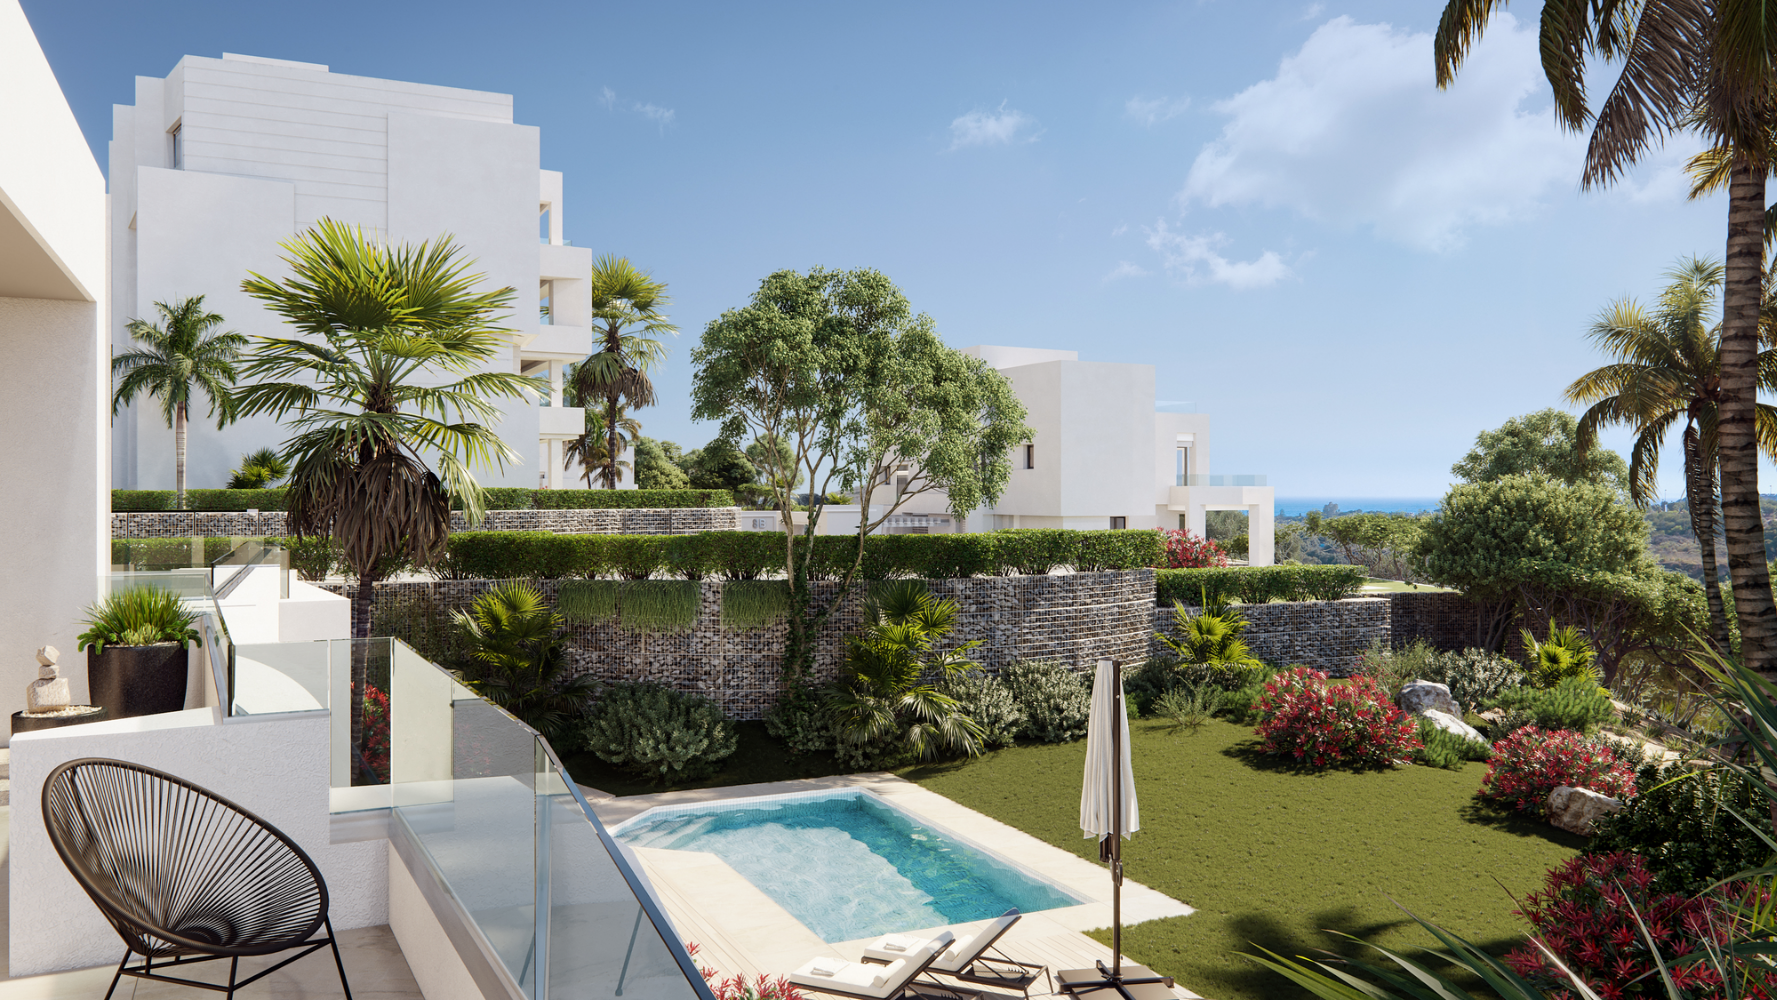 New & Exclusive, located in East - #Marbella and for #sale ...